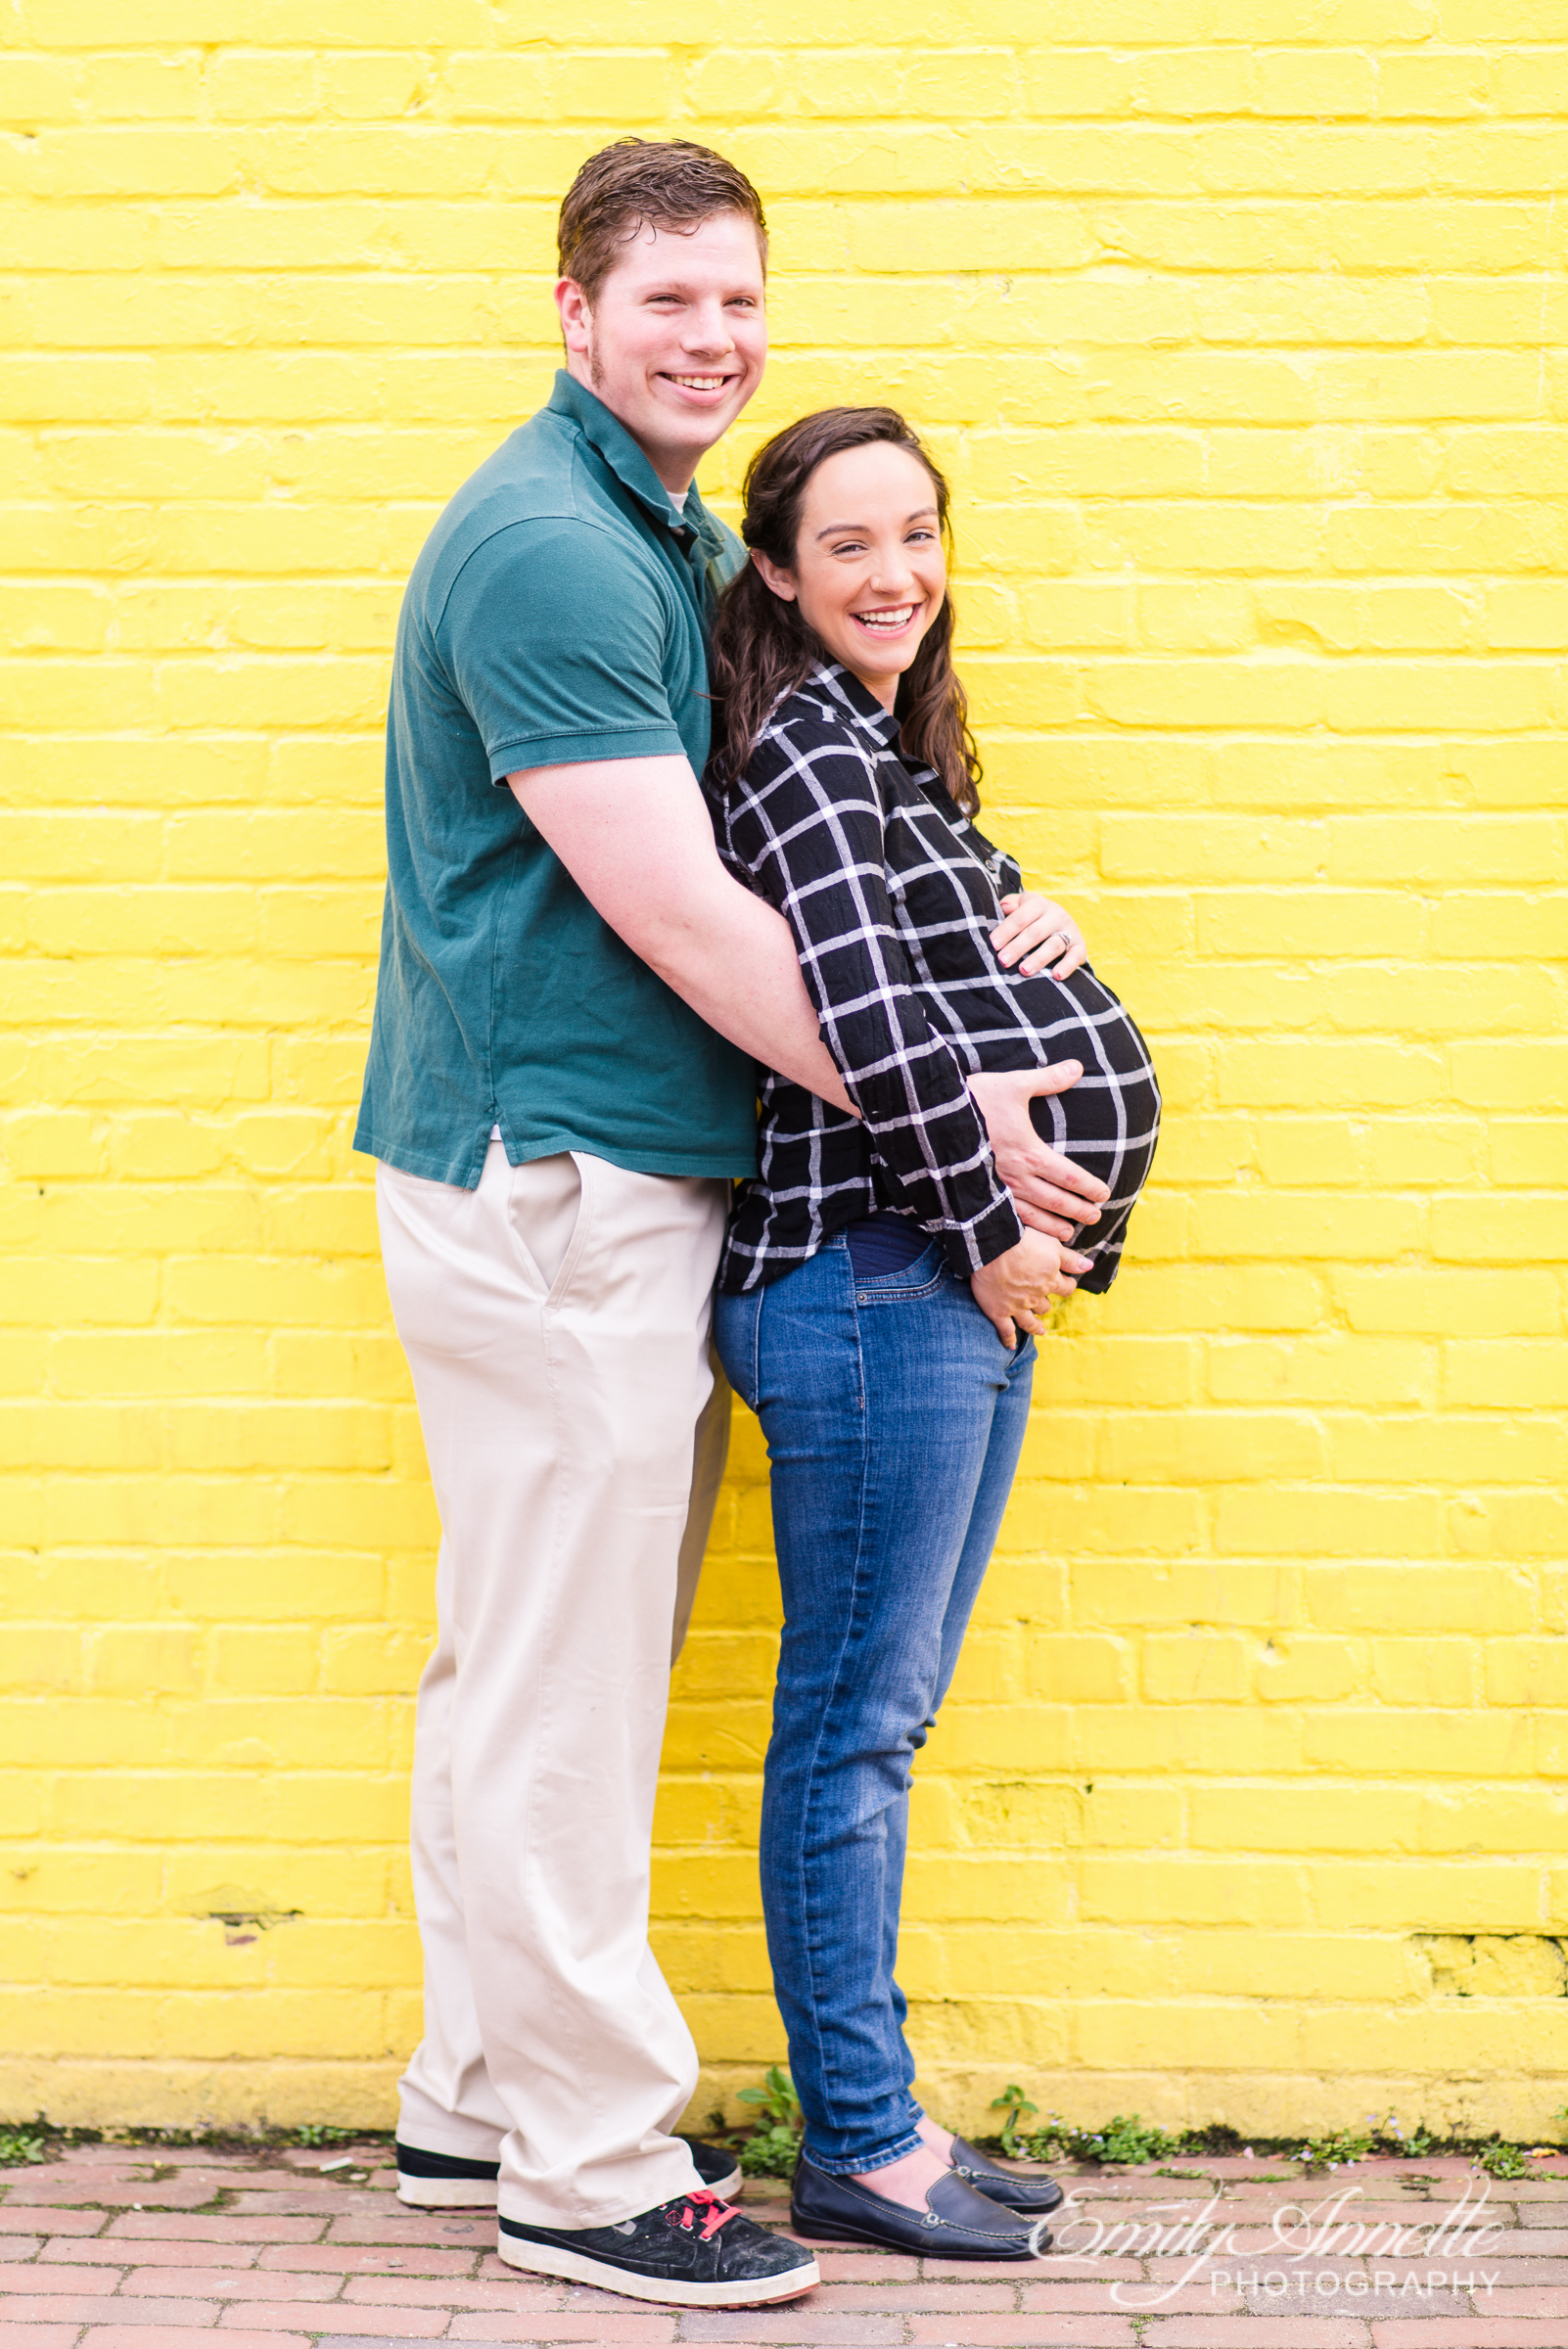 A pregnant woman poses with her husband for urban modern maternity photos in front of a bright yellow wall in Old Town Alexandria wearing a fun casual shirt and jeans